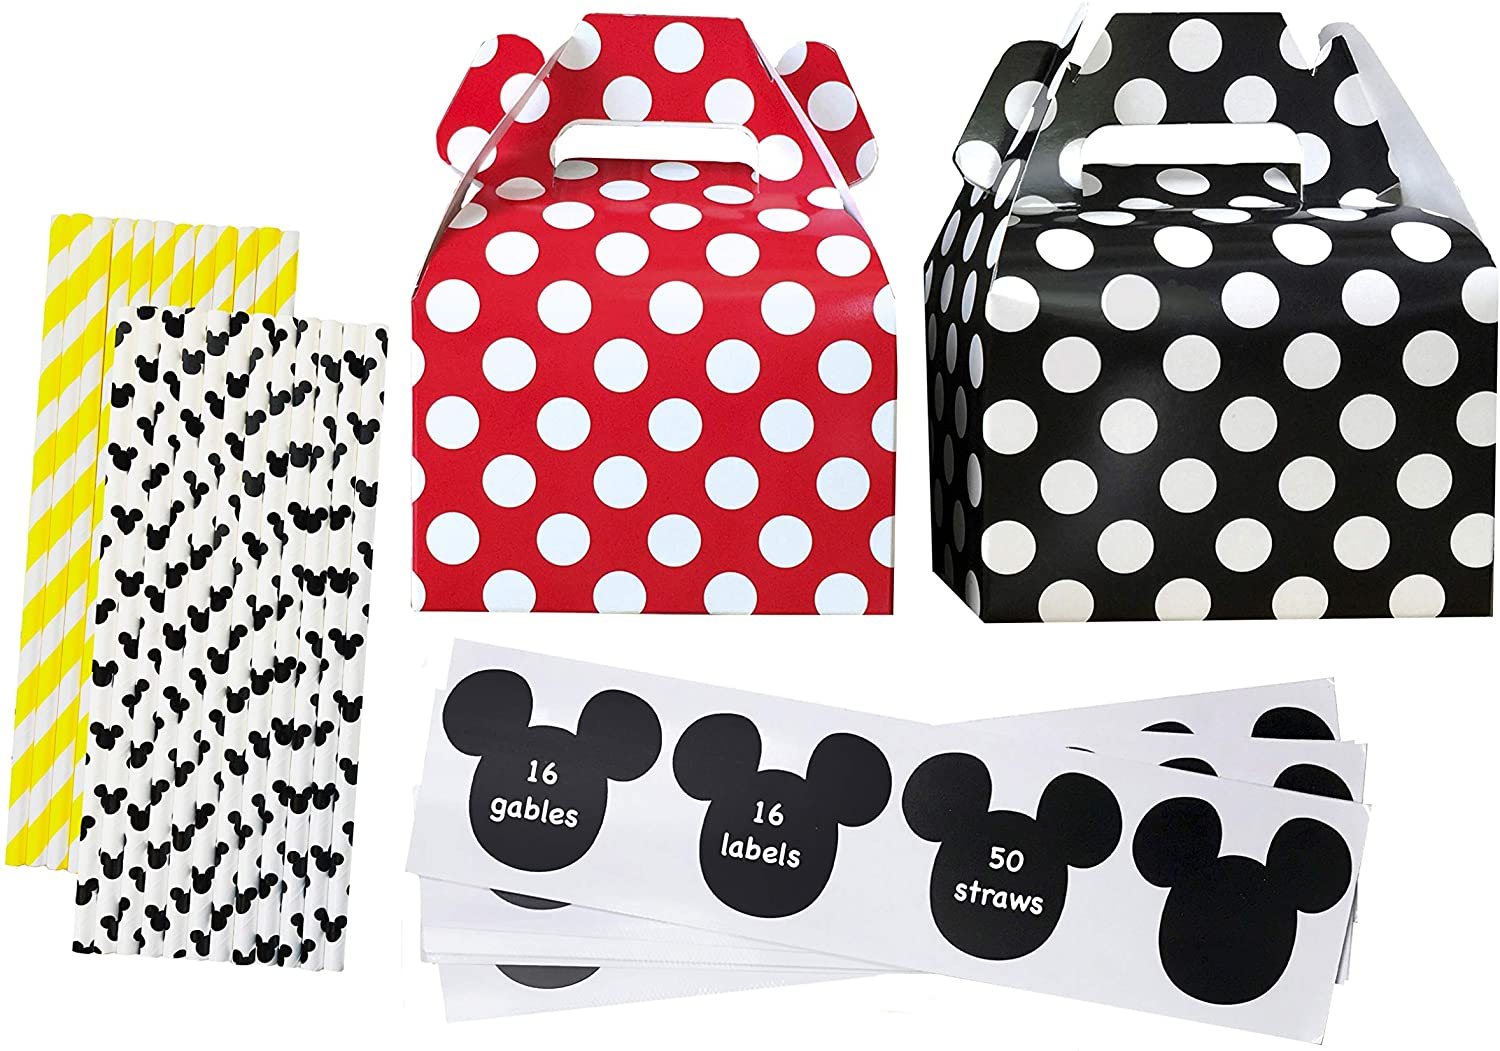 Mickey Mouse Theme Party Kit - 16 Gable Treat Boxes - 16 Mickey Mouse Theme Vinyl Chalkboard Labels - 50 Paper Straws - Red Black Yellow White